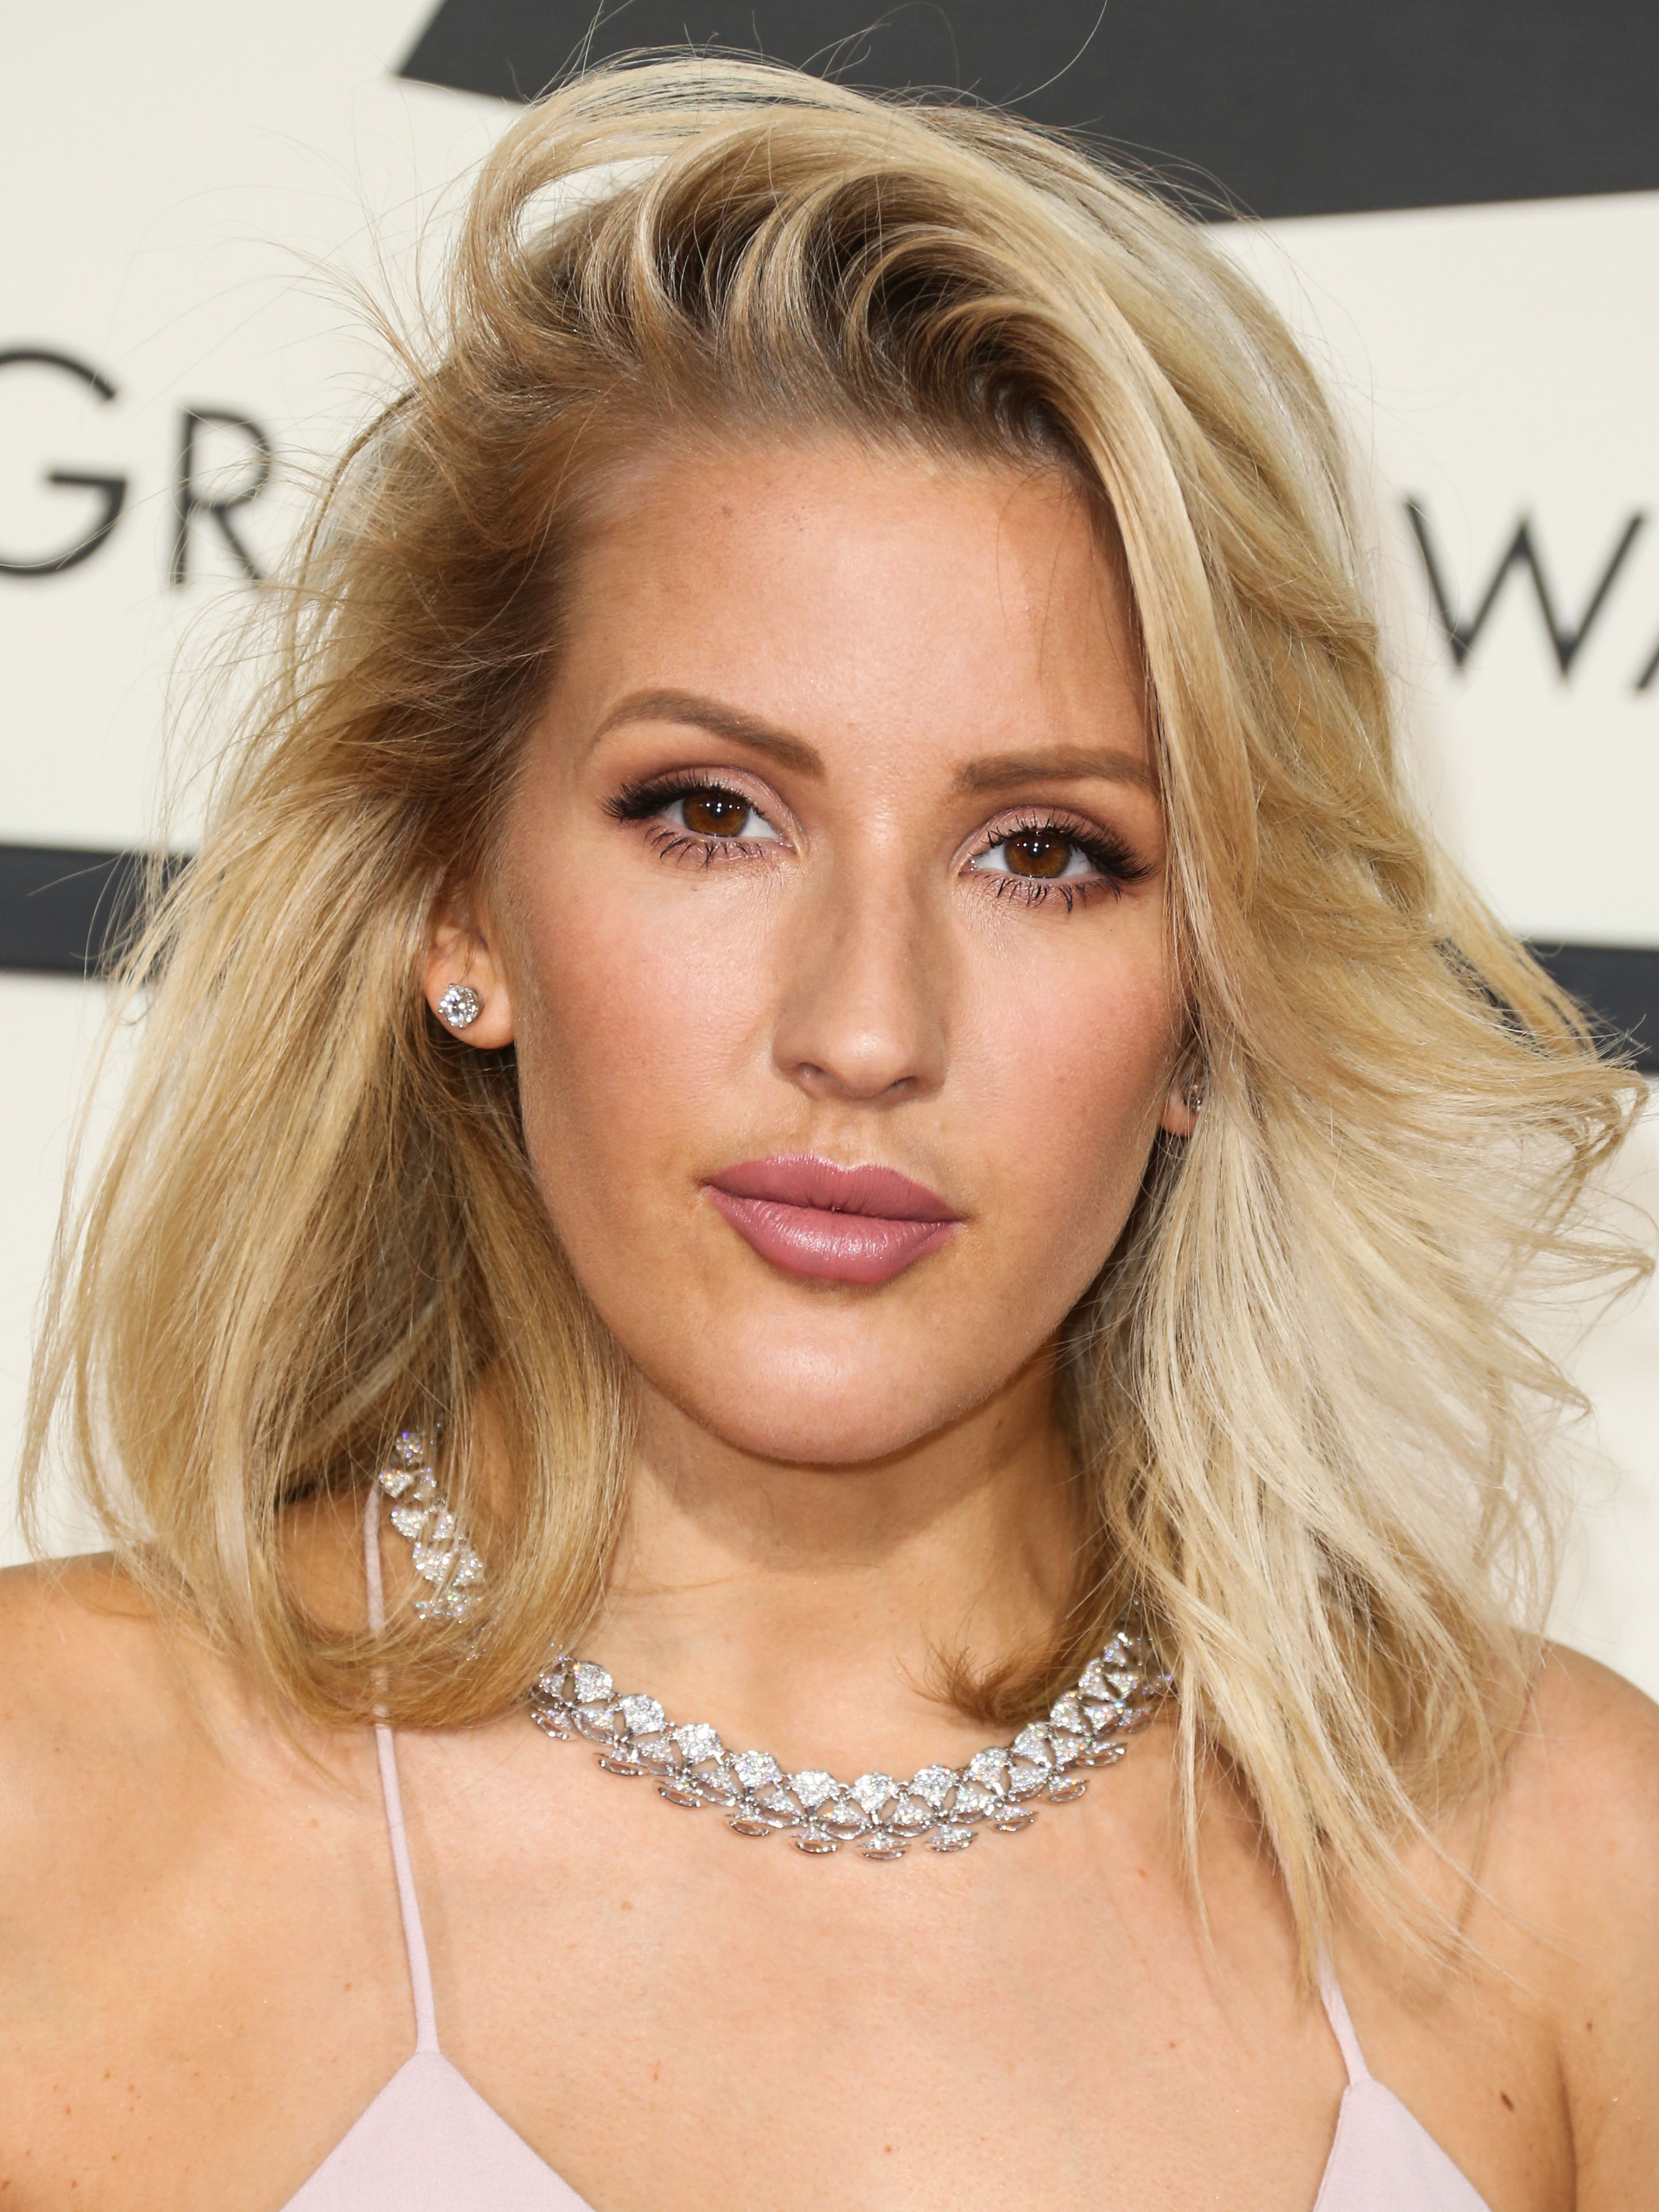 Ellie Goulding WILL attend exflame Prince Harrys